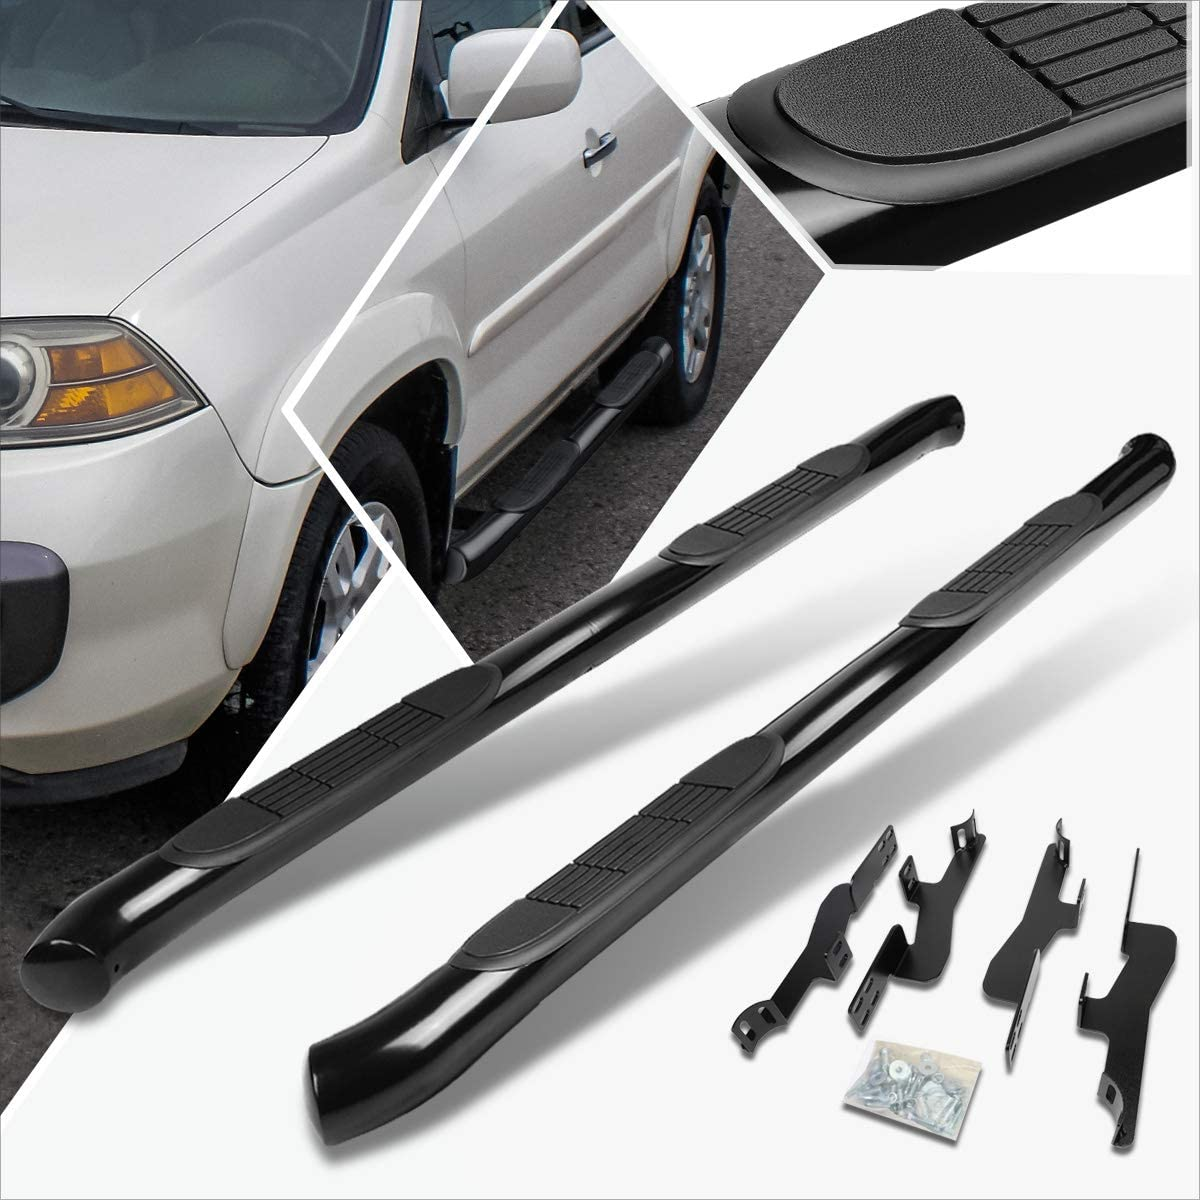 3 Inches Sale special price Black Running Board Side Bar Credence Compatible with Nerf Step